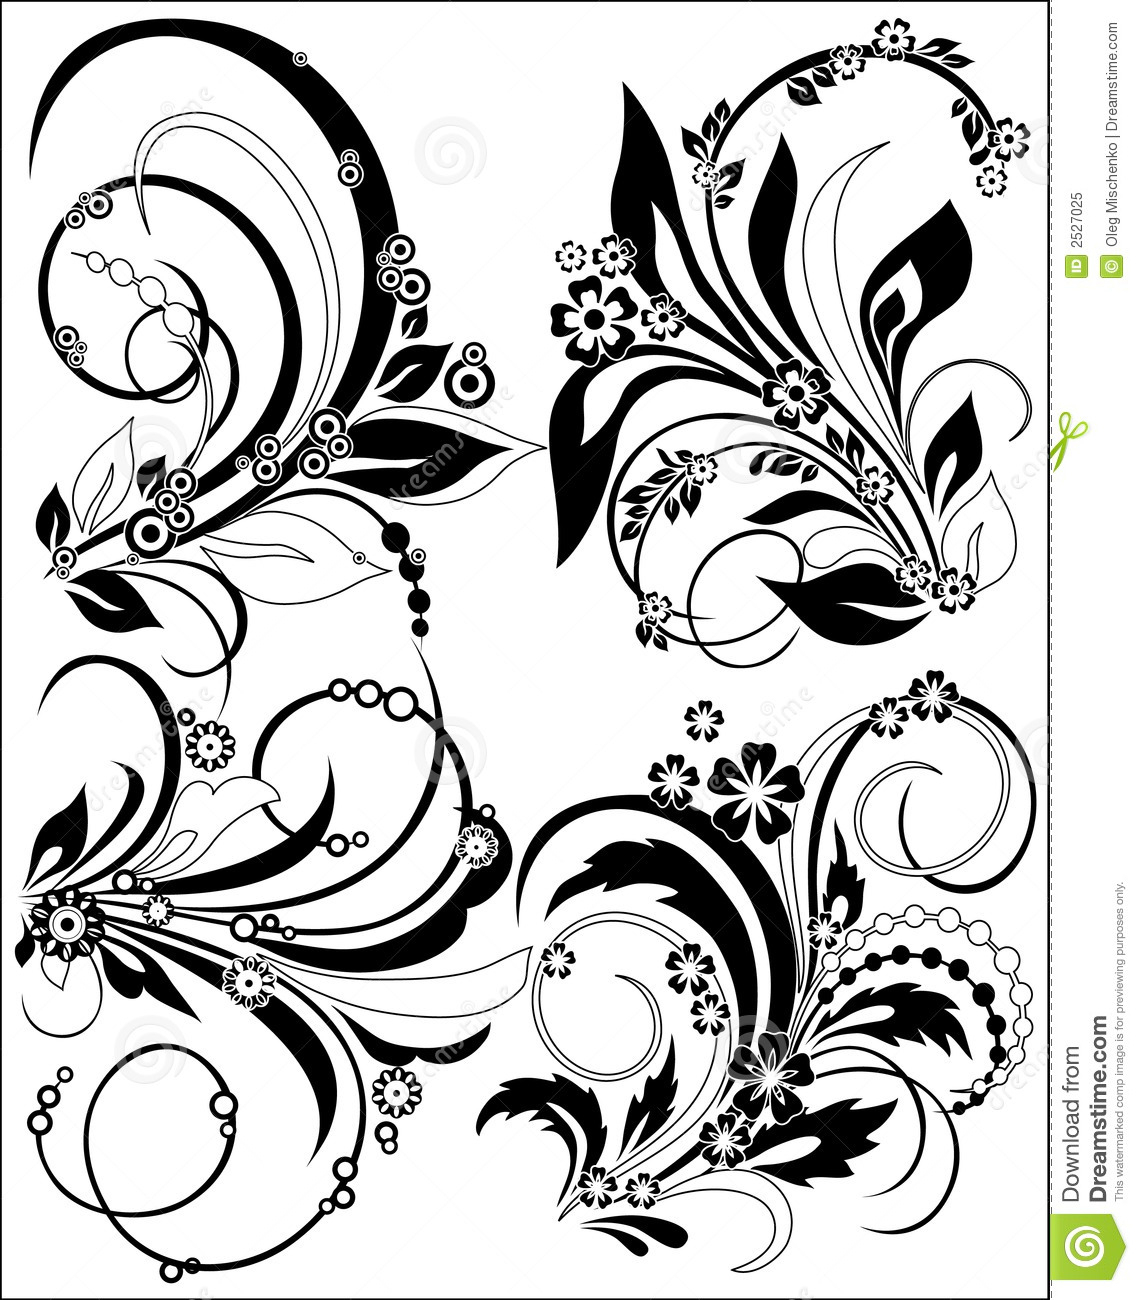 1139x1300 Flowers Decoration Image Drawings Flowers Silhouette Royalty Free